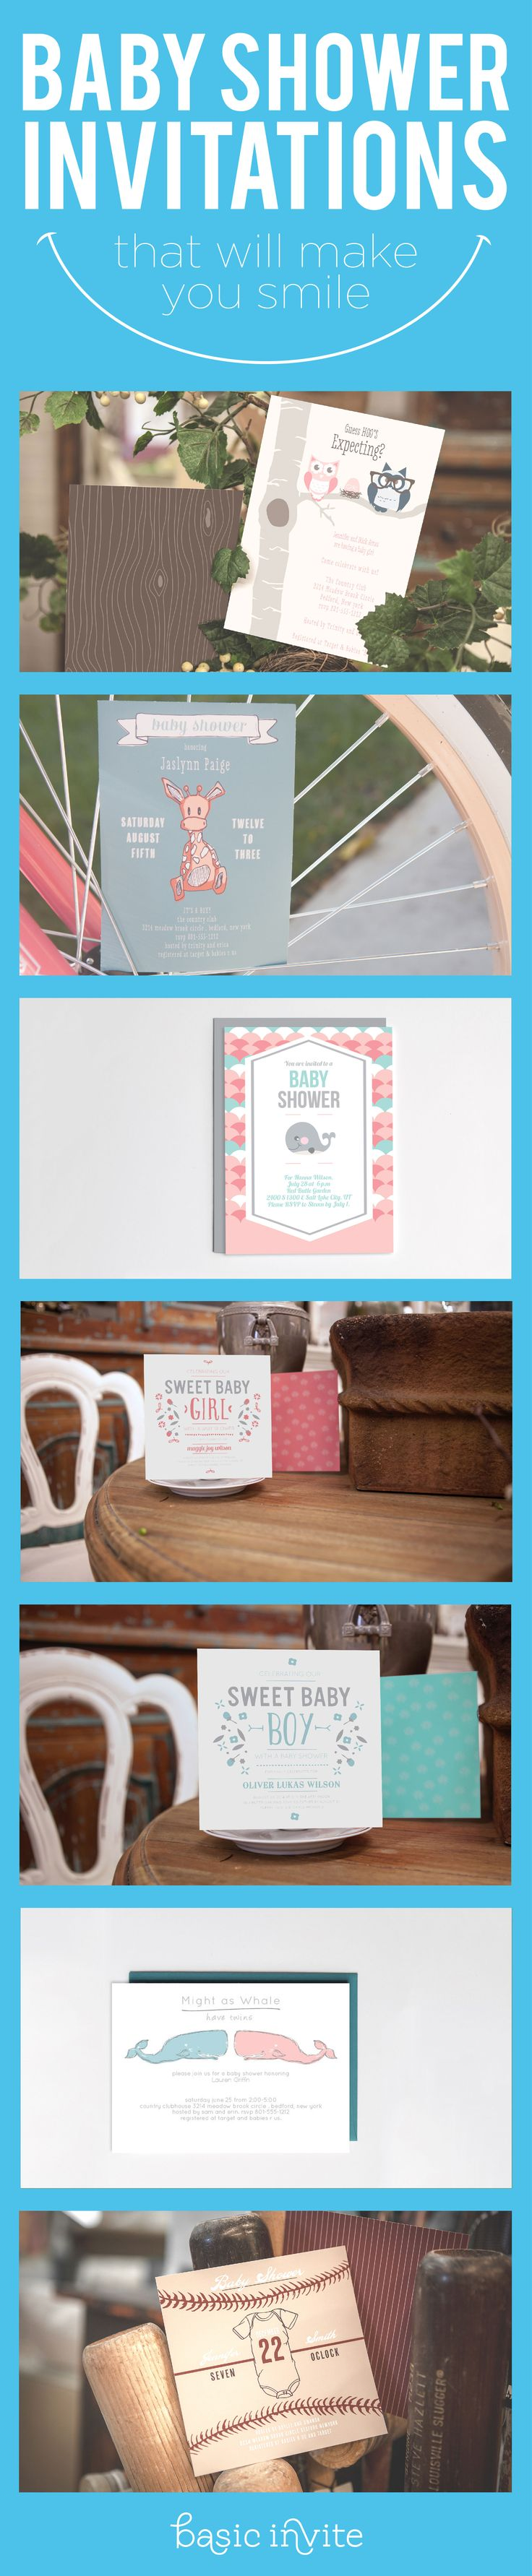 67 best Baby Shower Invitations images on Pinterest